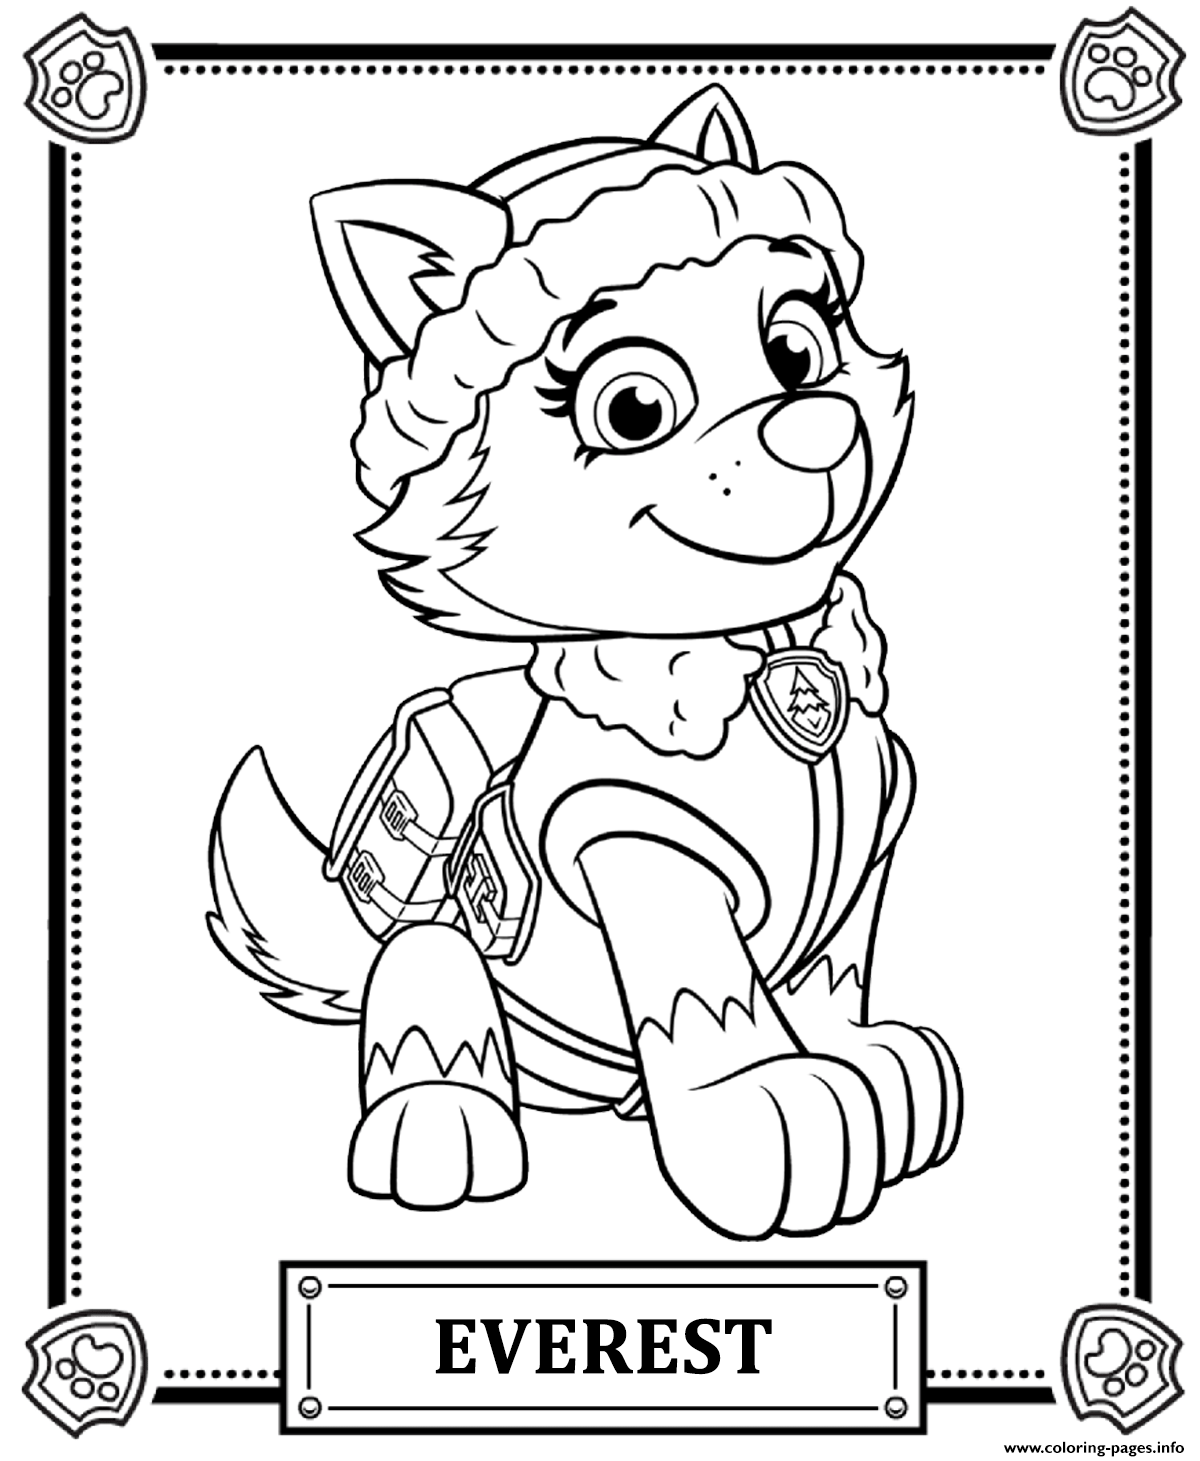 Print paw patrol everest coloring pages kleurplaten Paw Patrol